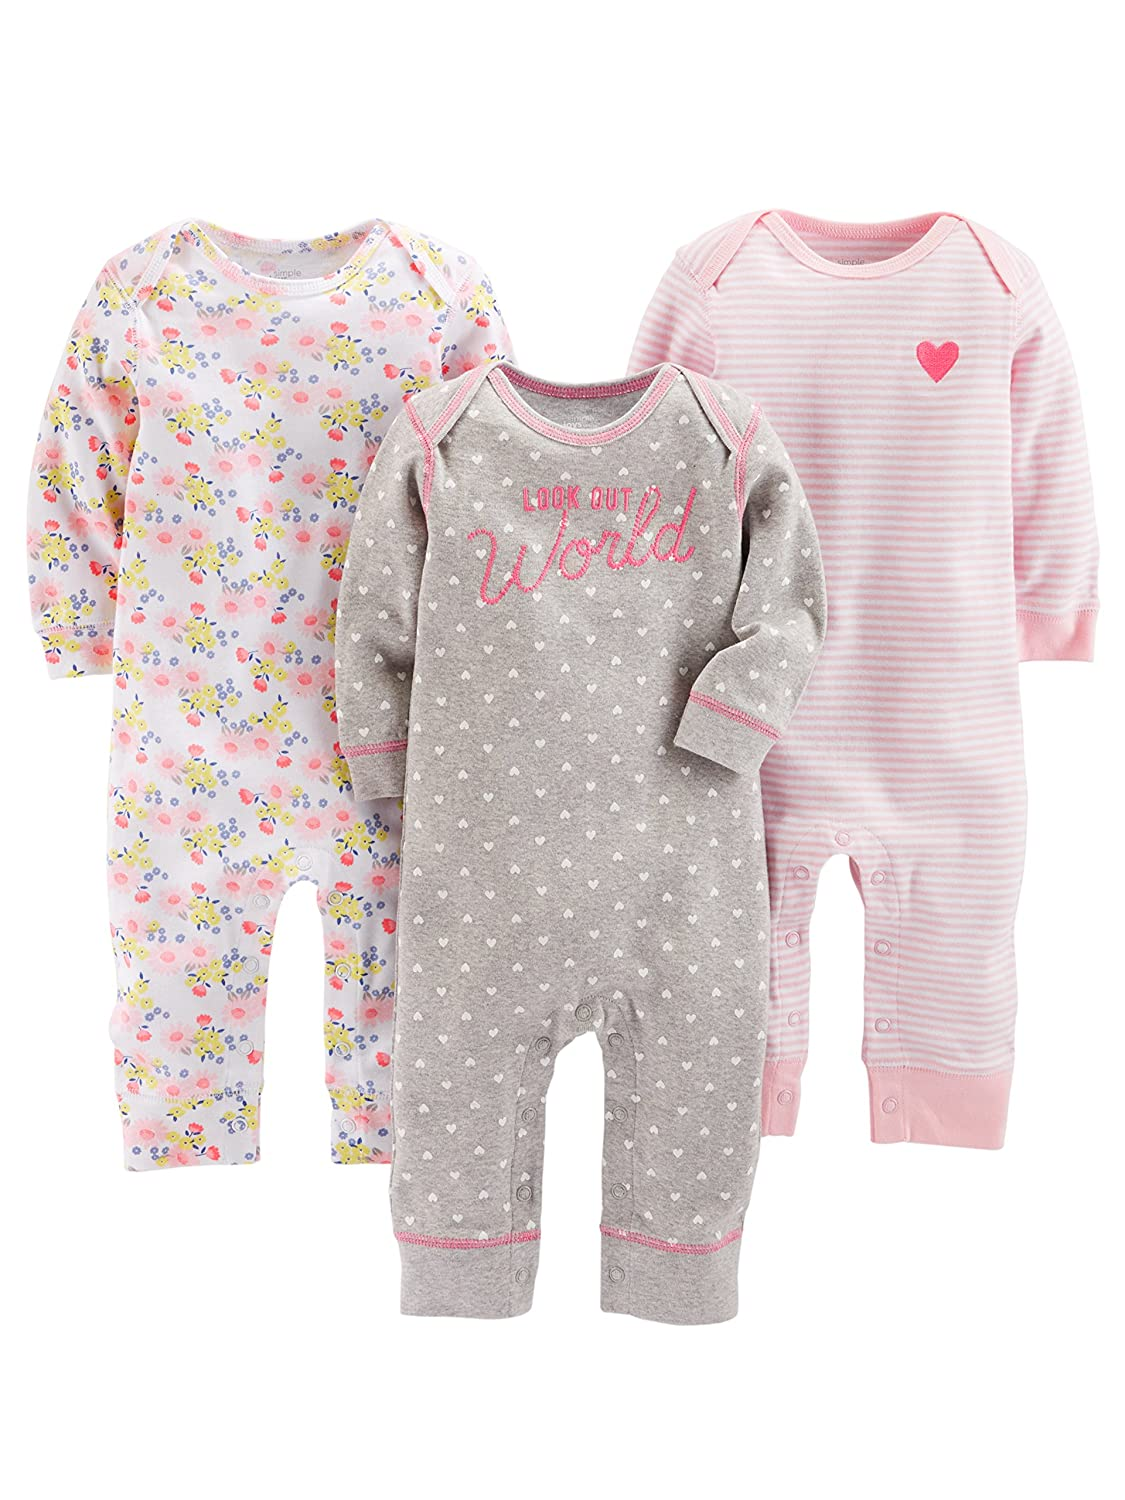 0a7e69b78 Online Cheap wholesale Simple Joys by Carters Girls 3-Pack Jumpsuits,  Footies & Rompers Suppliers